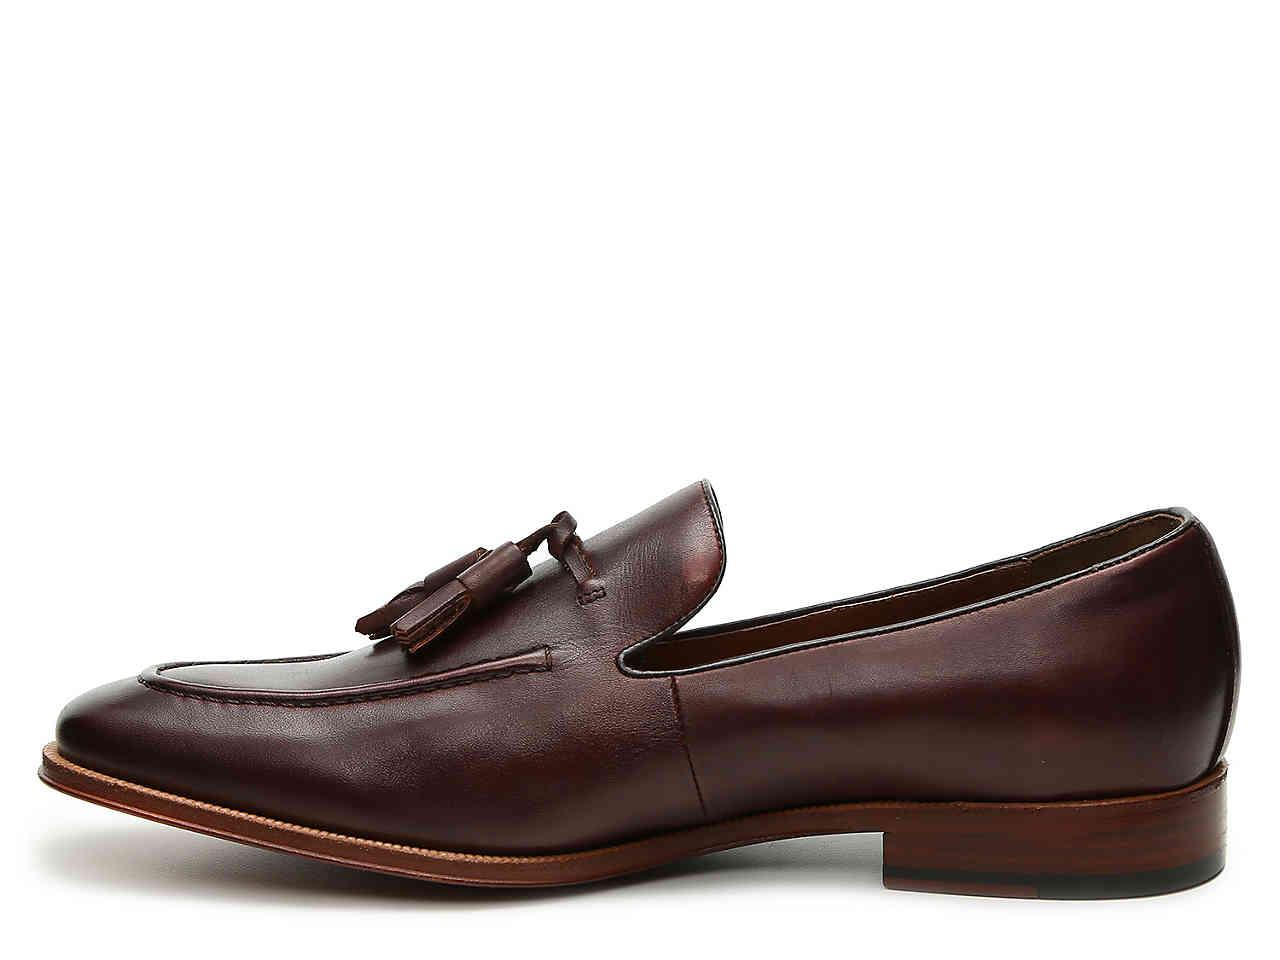 8f6bf8f5e65 Blake McKay - Brown Aldrich T8 Loafer for Men - Lyst. View fullscreen